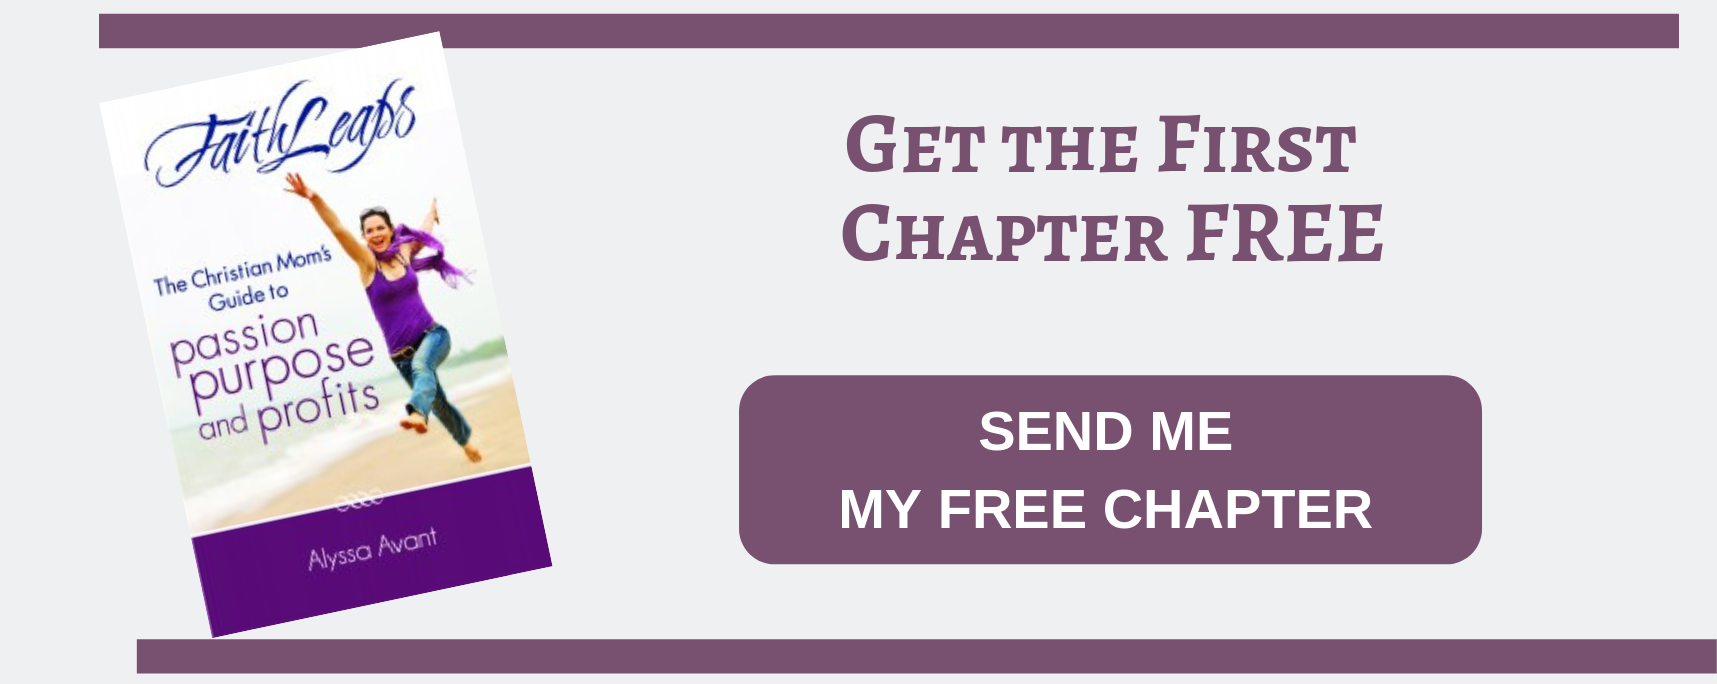 Get the First Chapter FREE